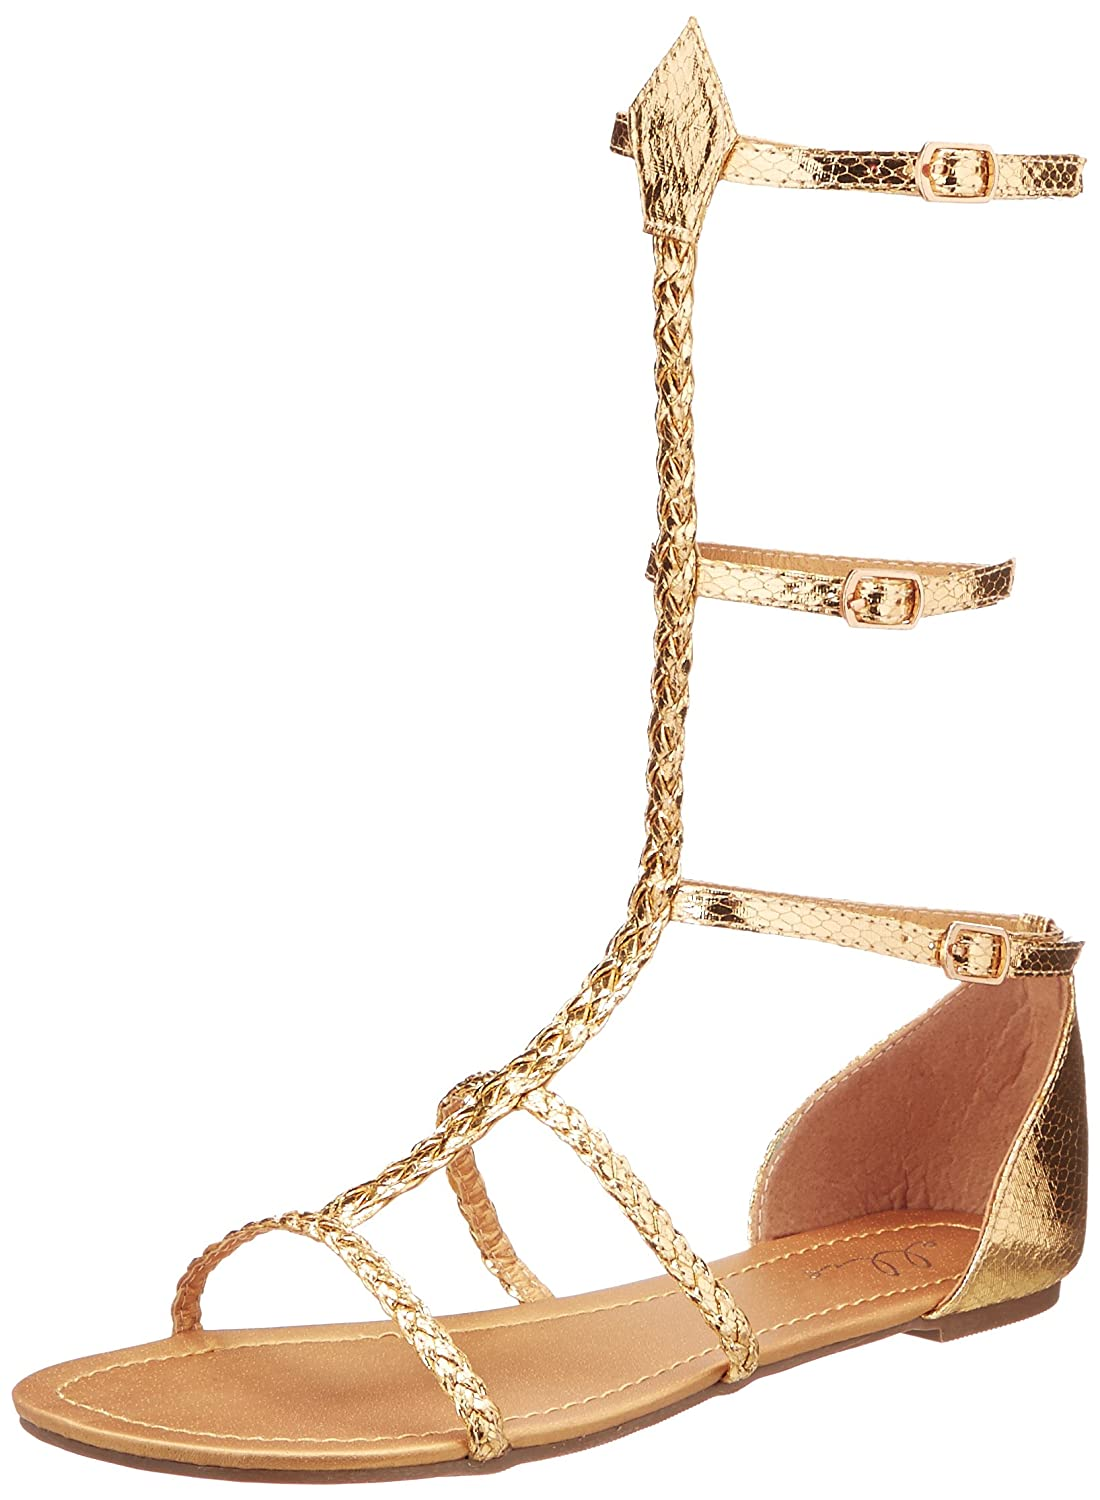 Women's Gold Gladiator Mid-Calf Flat Sandal by Ellie Shoes